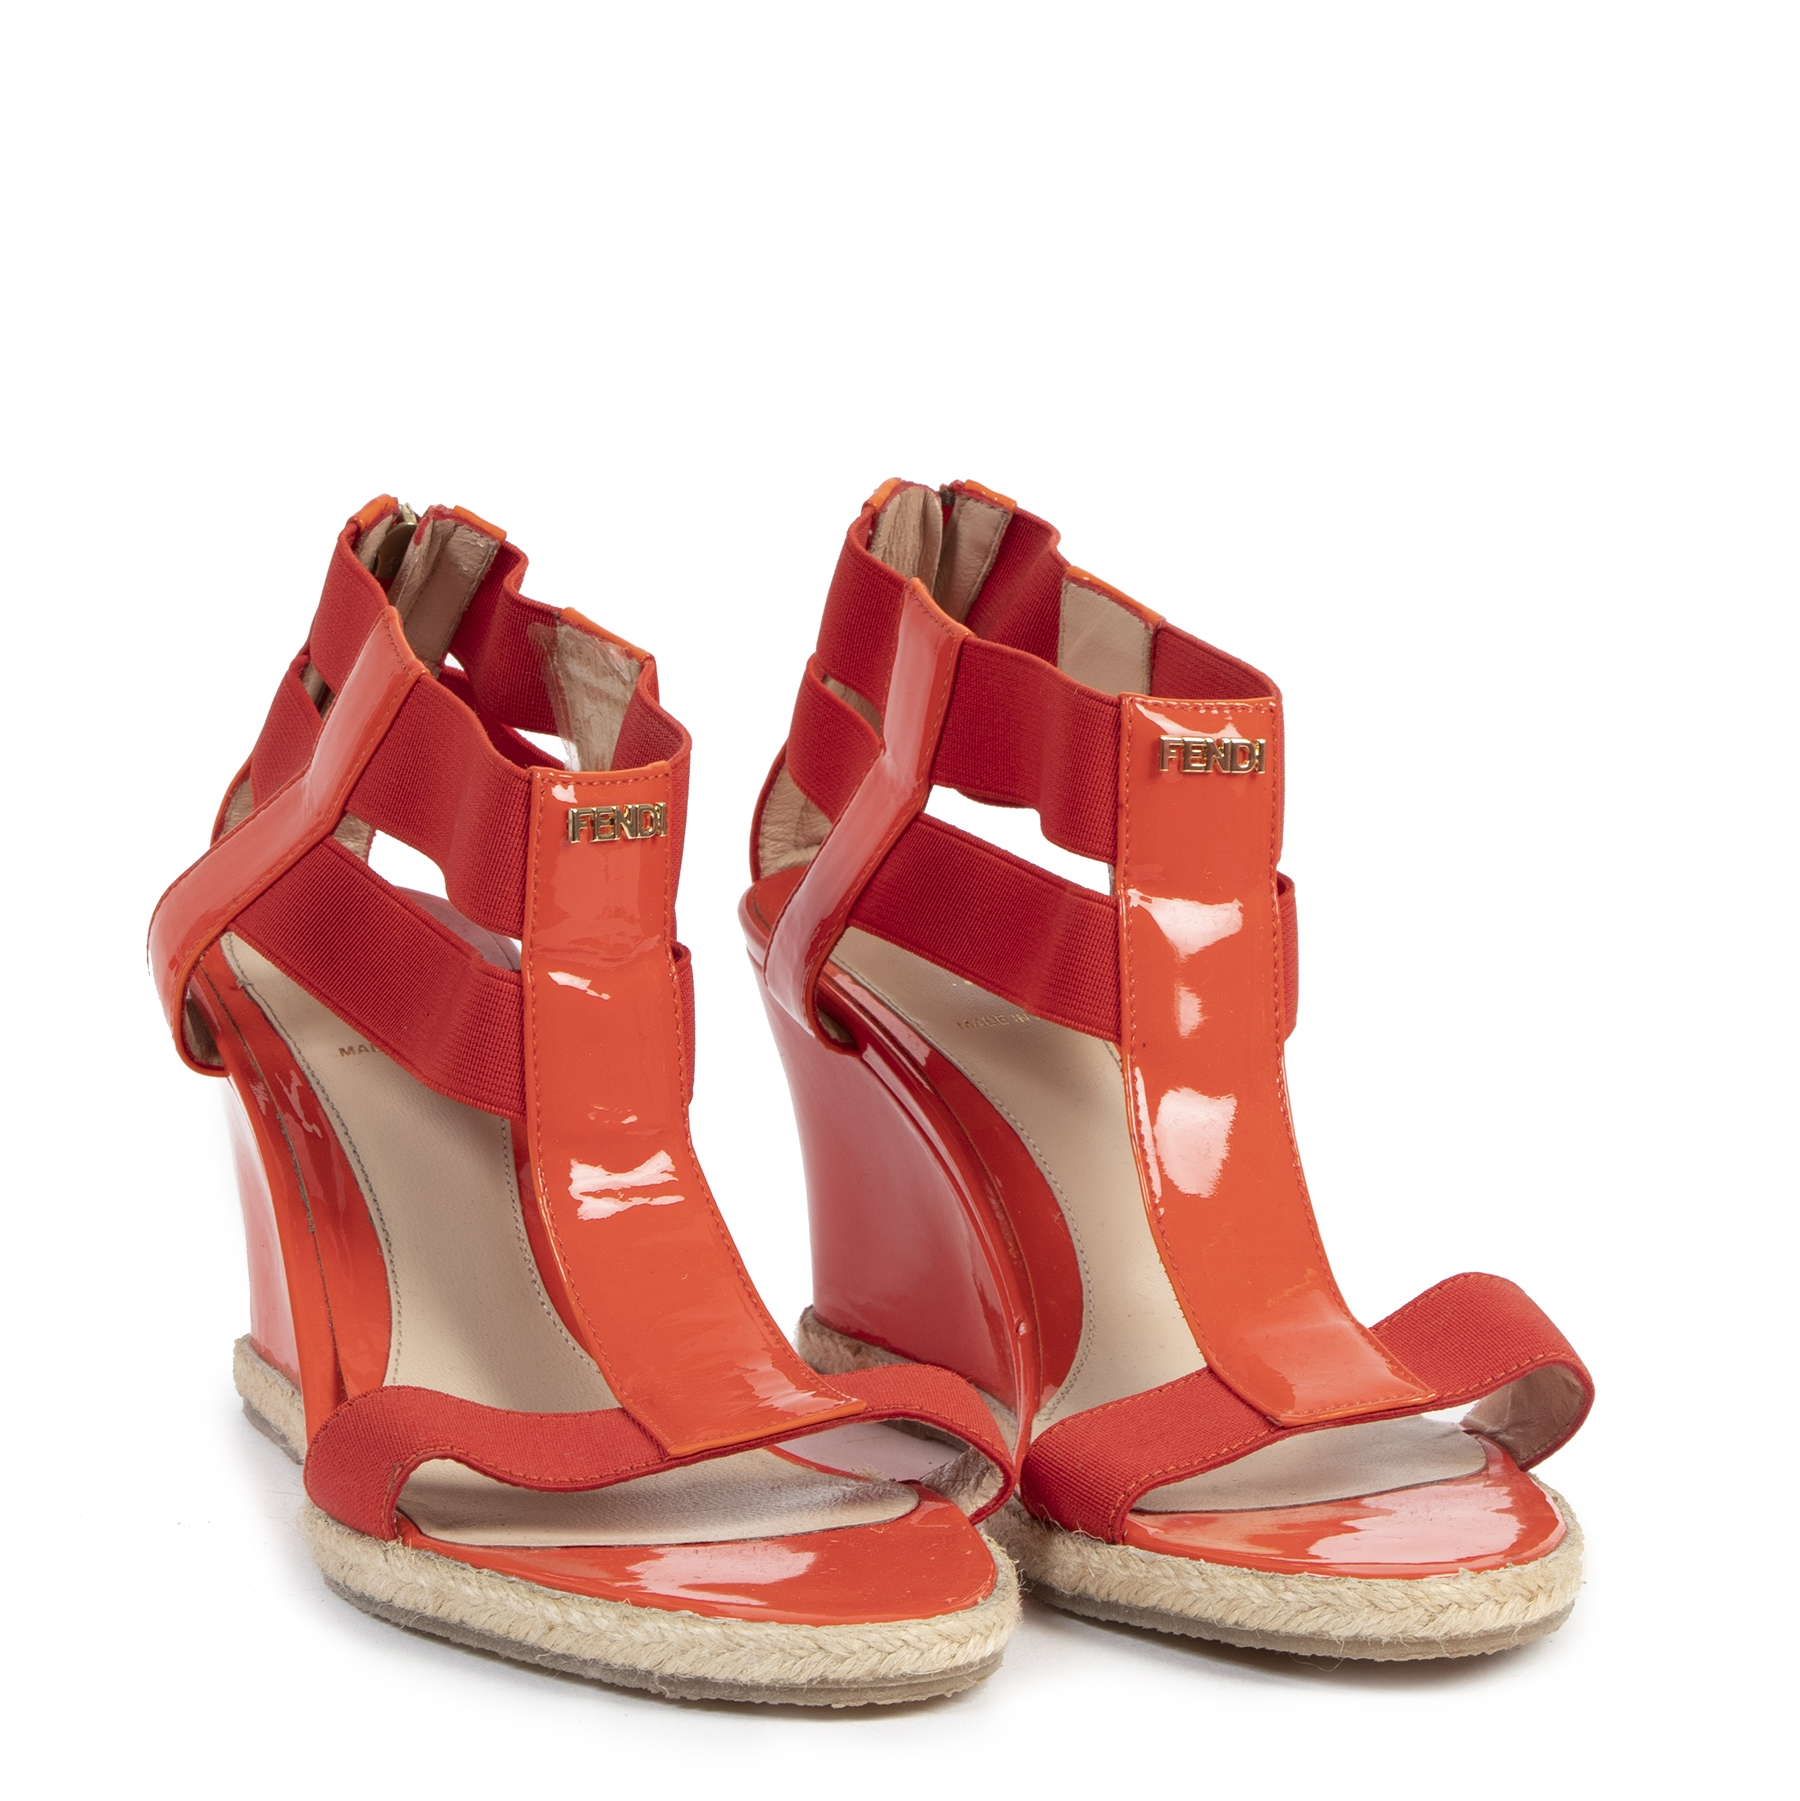 Authentic secondhand Fendi Red Strappy Wedge Sandals - Size 40 designer luxury vintage webshop safe secure online shopping